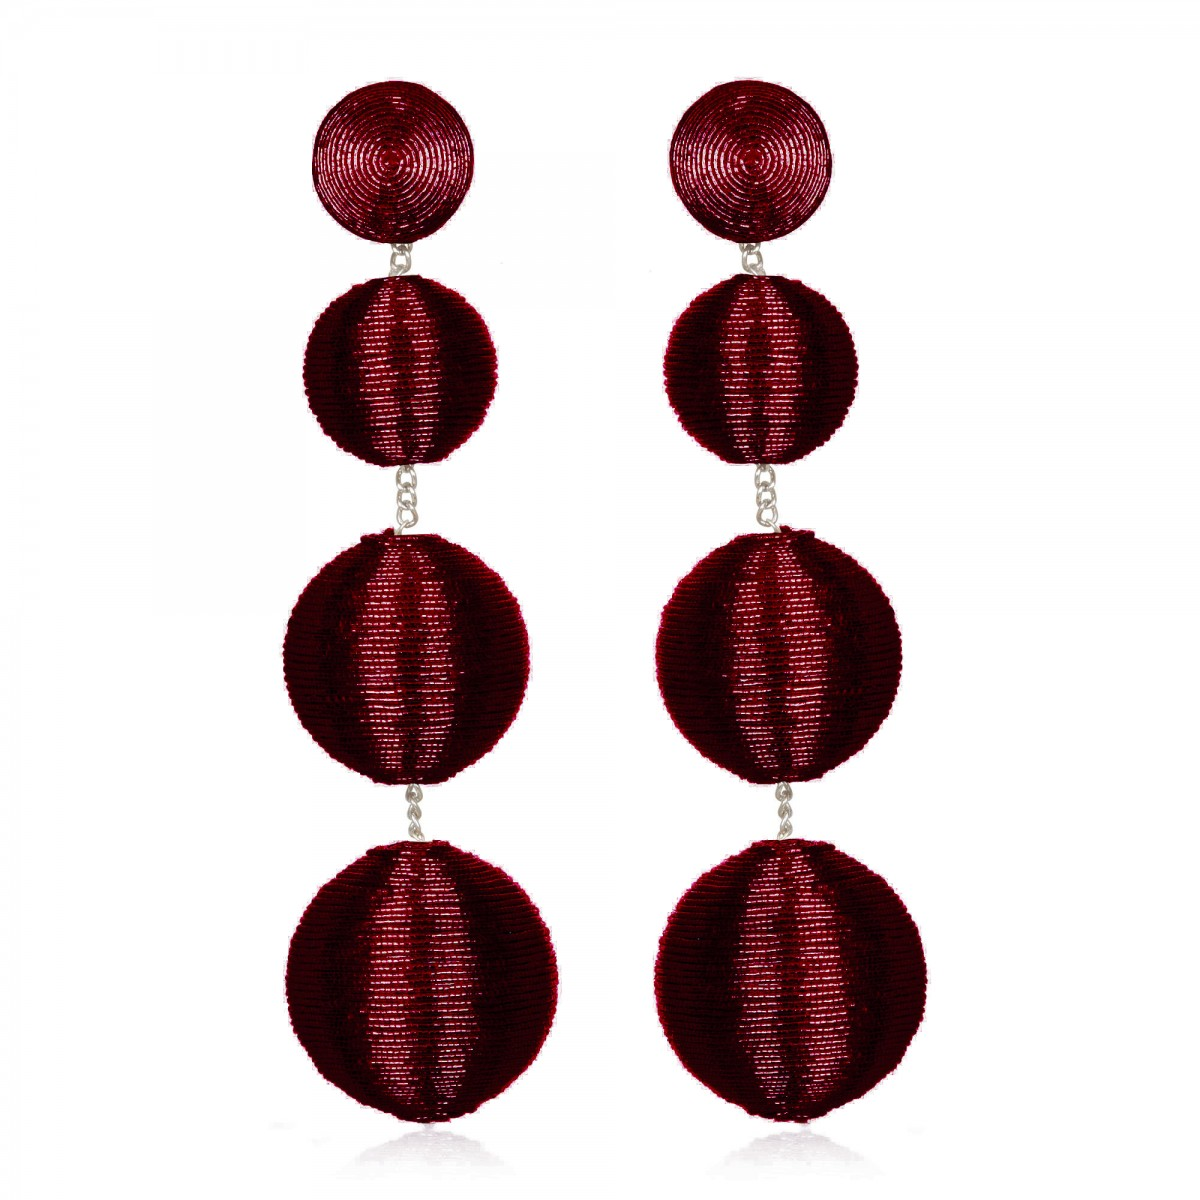 Metalllic Wine Gumball Earrings by SUZANNA DAI